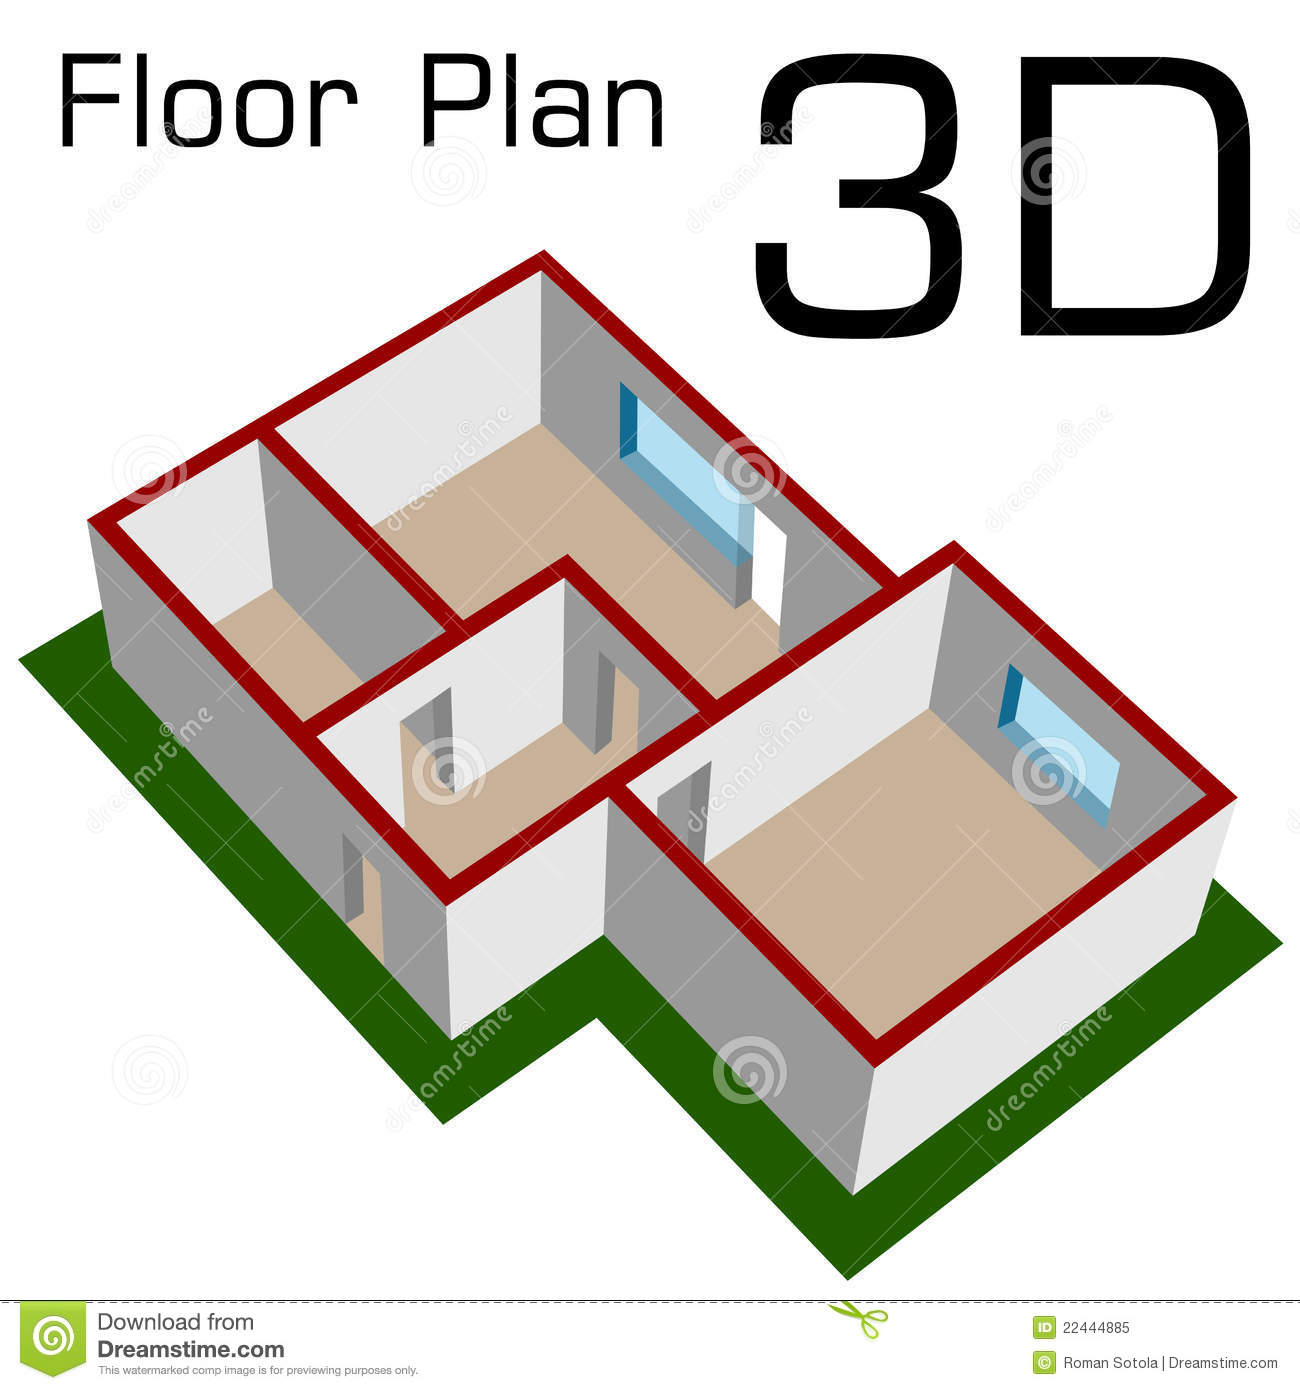 More 2 Bedroom Floor Plans Bedroom Layout Twins 3d Floor